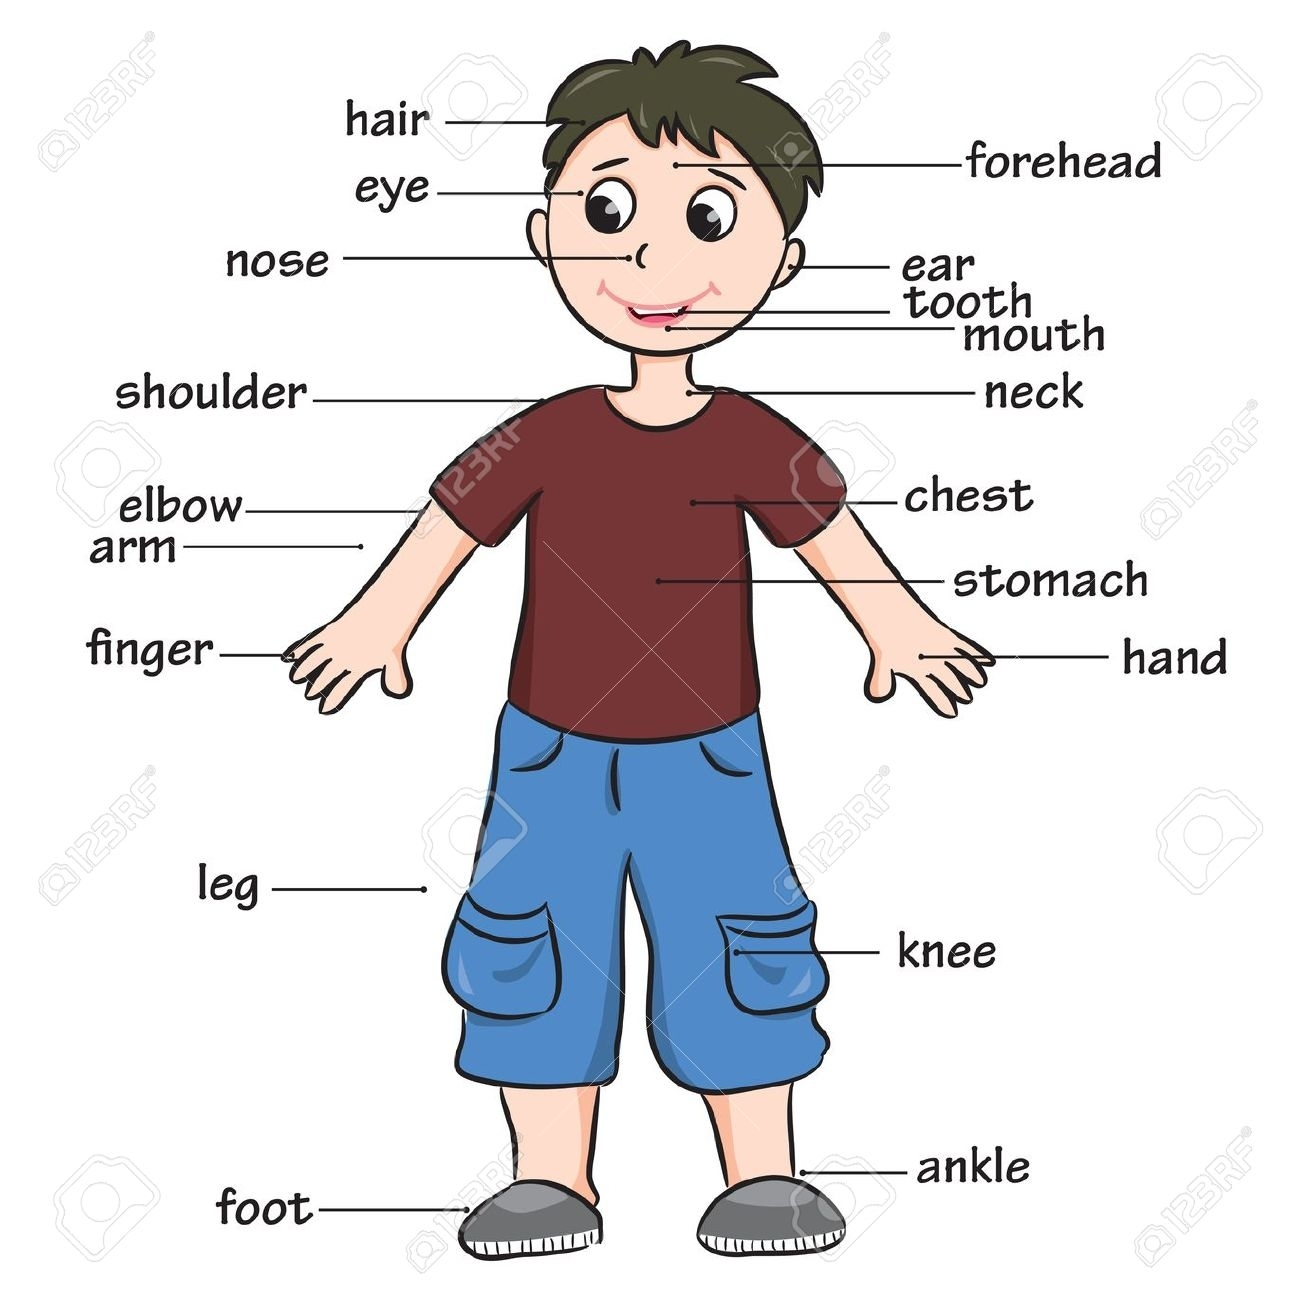 Human Body Parts For Kids Deep Photo Gallery In Website With Human